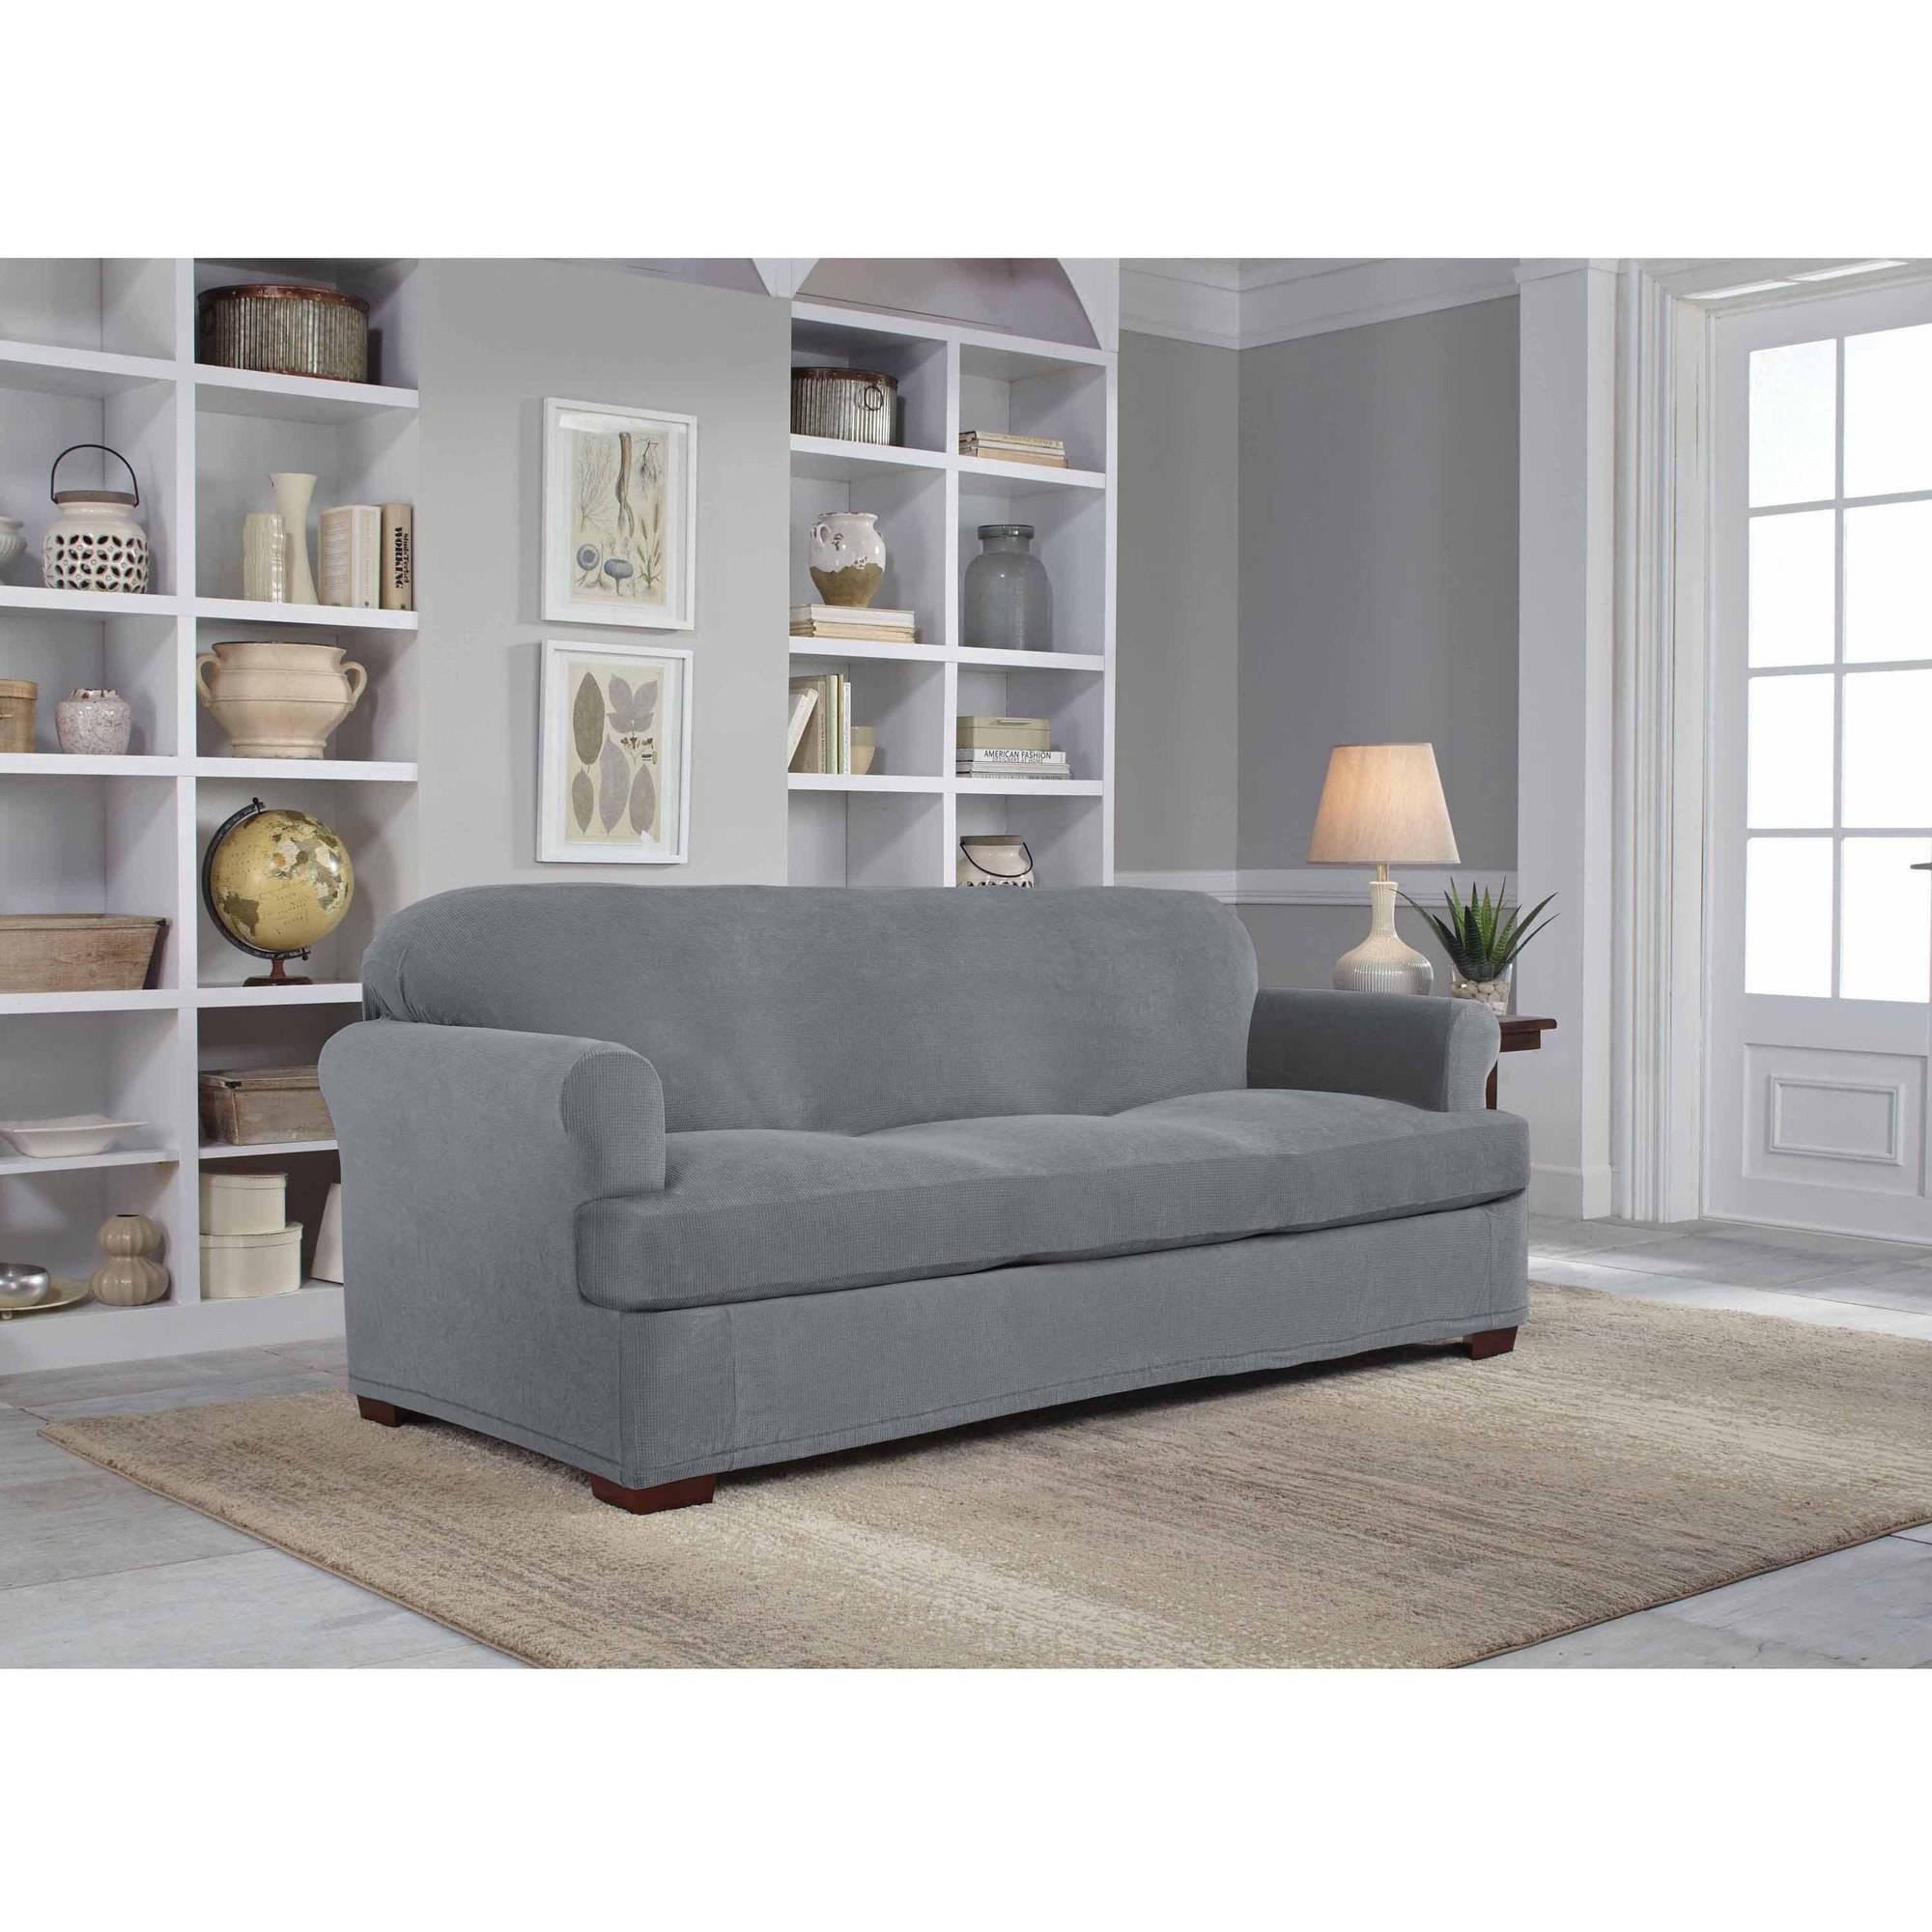 Big Cushion Sofa T Cushion Slipcovers For Large Sofas Sofa Ideas T Cushion